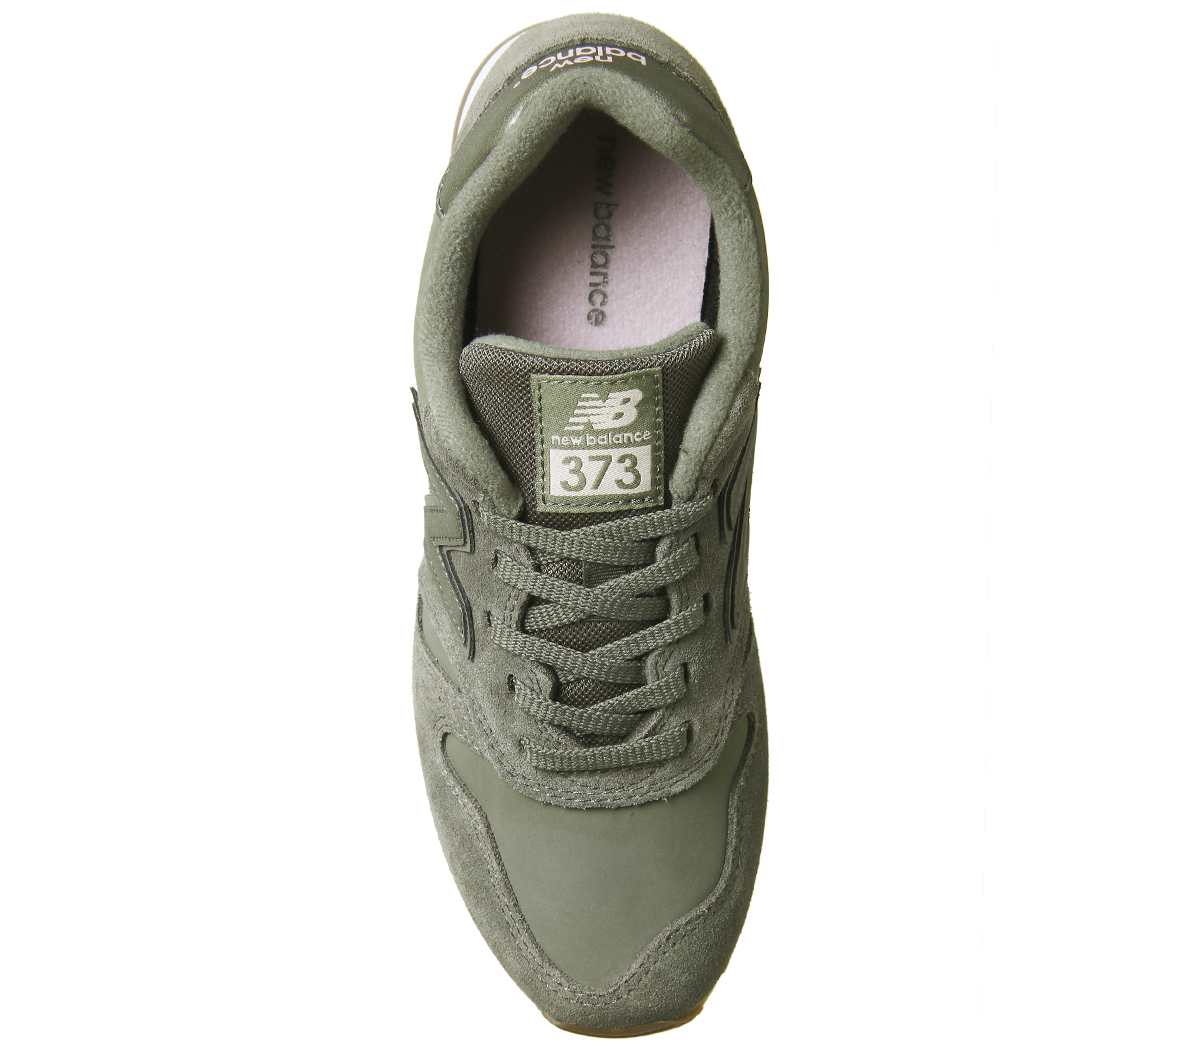 Details about Womens New Balance 373 Trainers Light Khaki Trainers Shoes